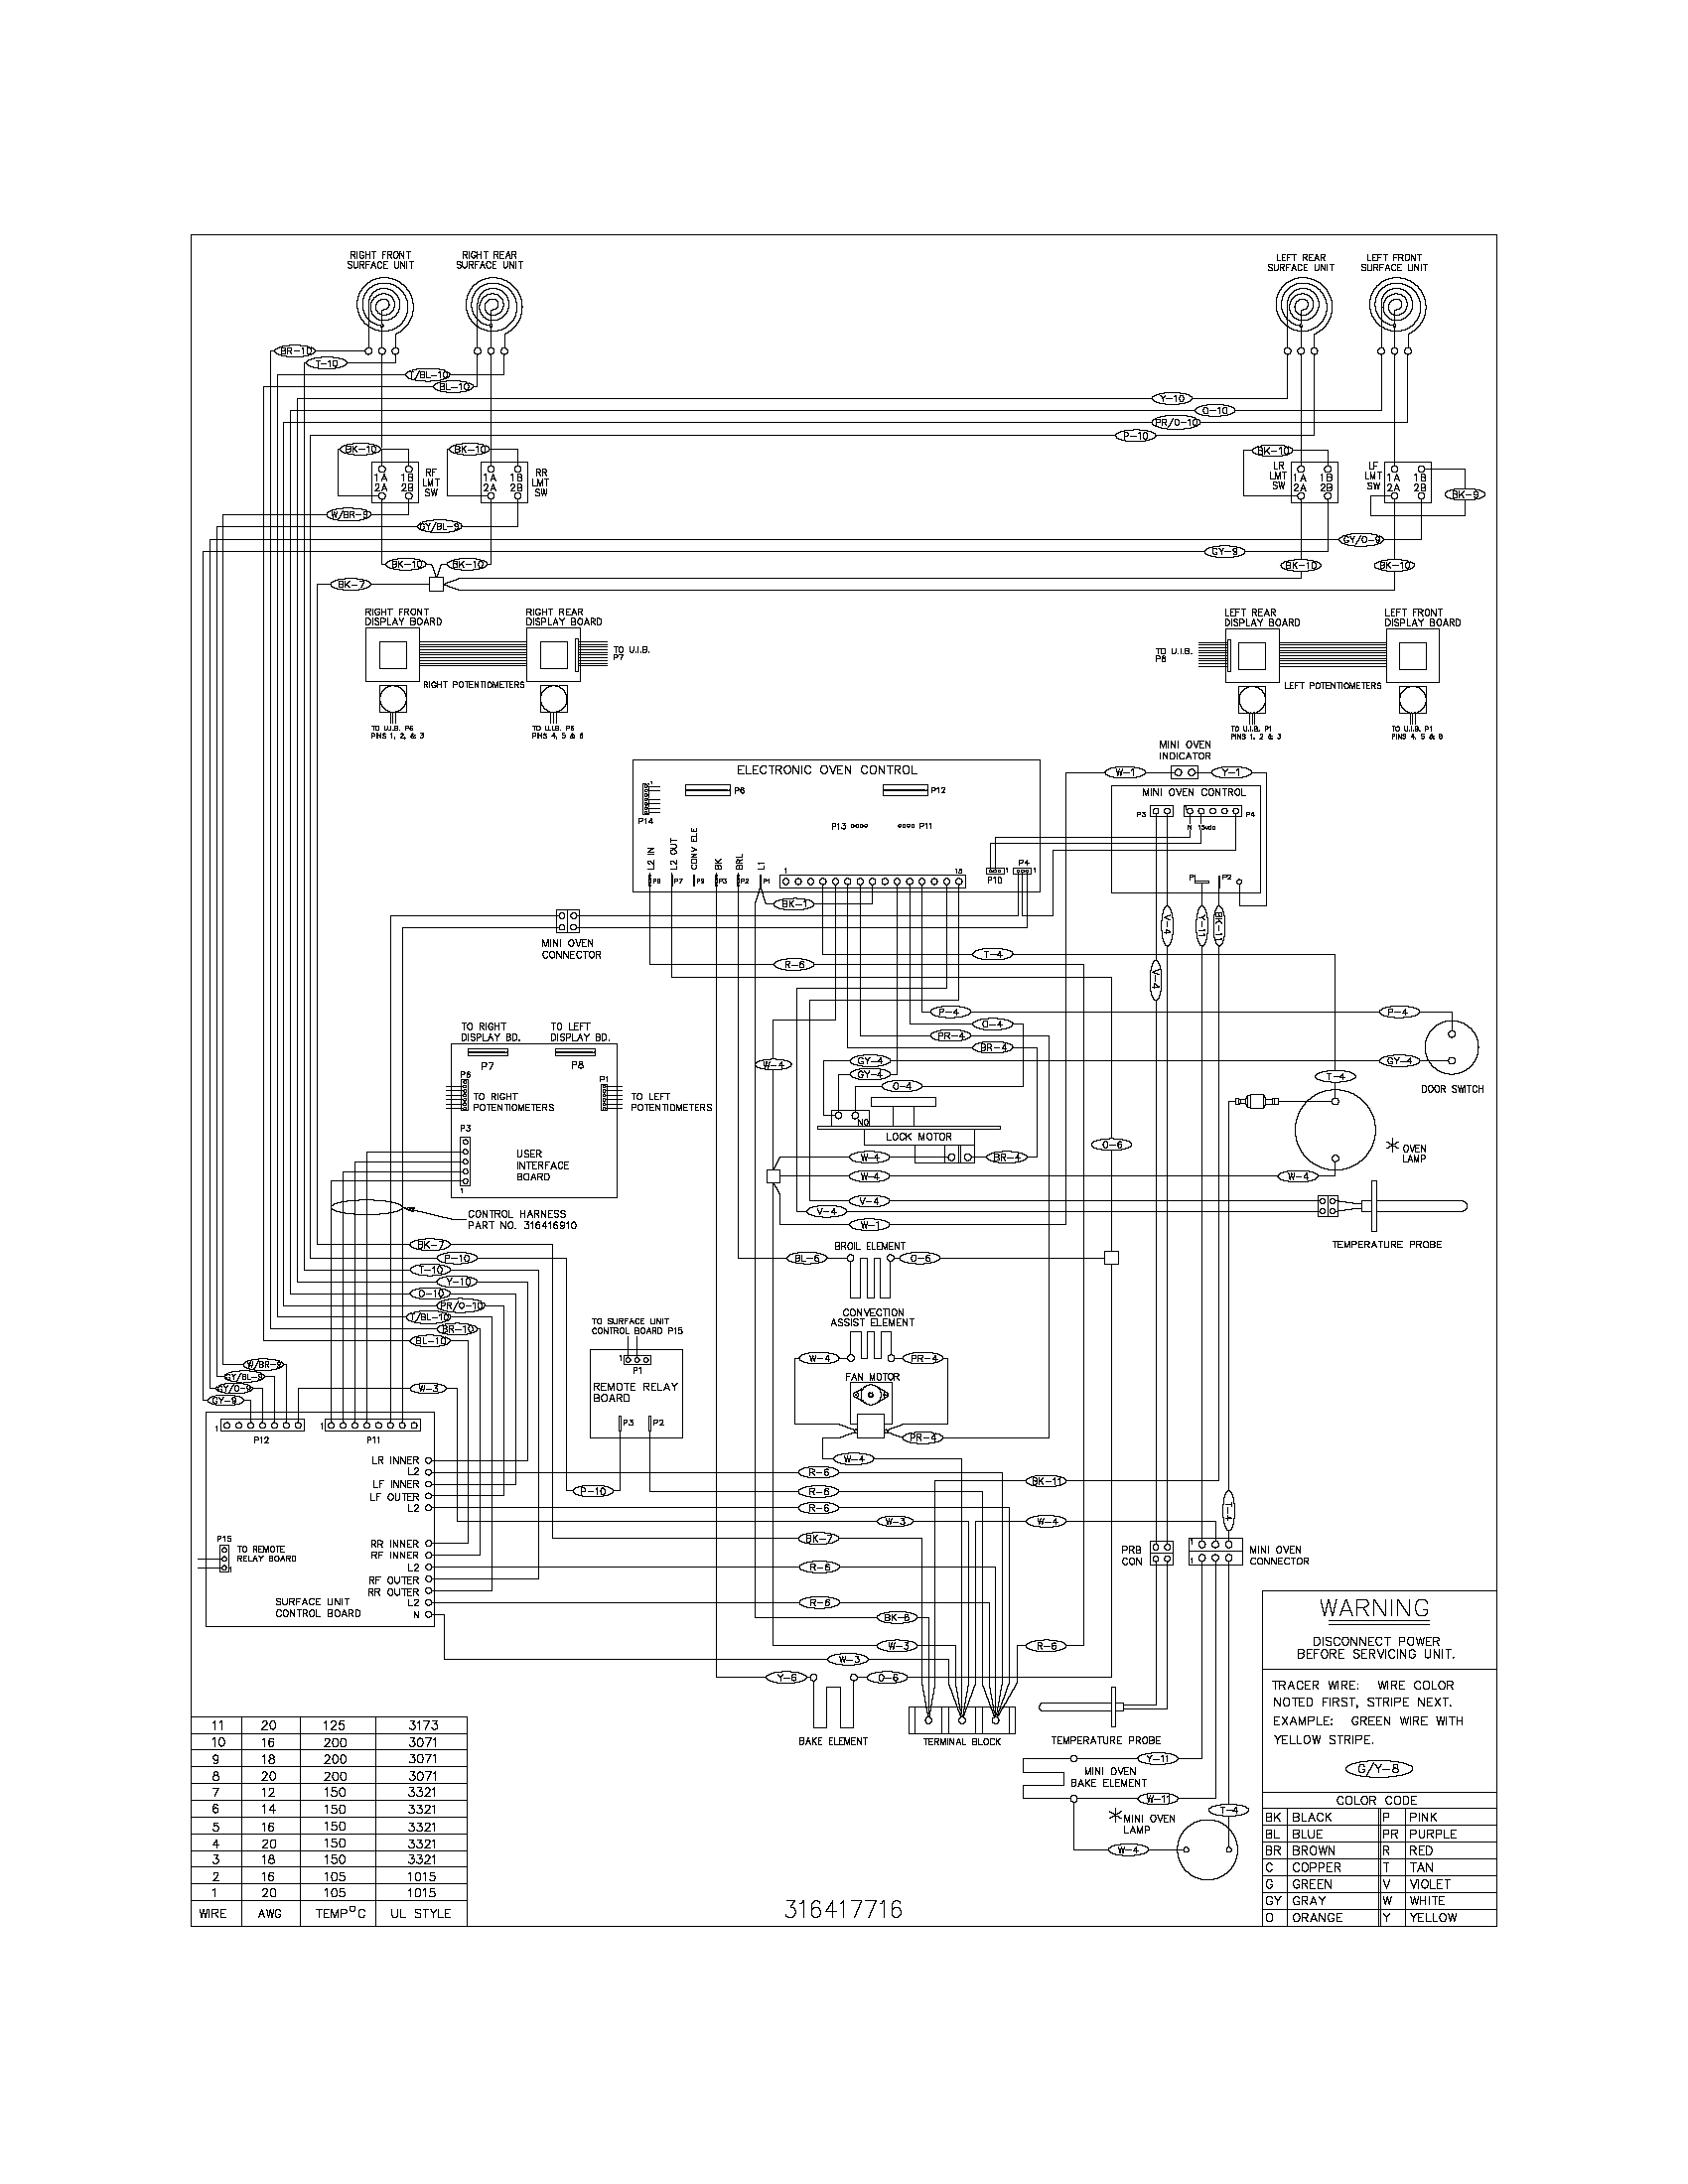 Westinghouse Wiring Diagram | Wiring Liry on